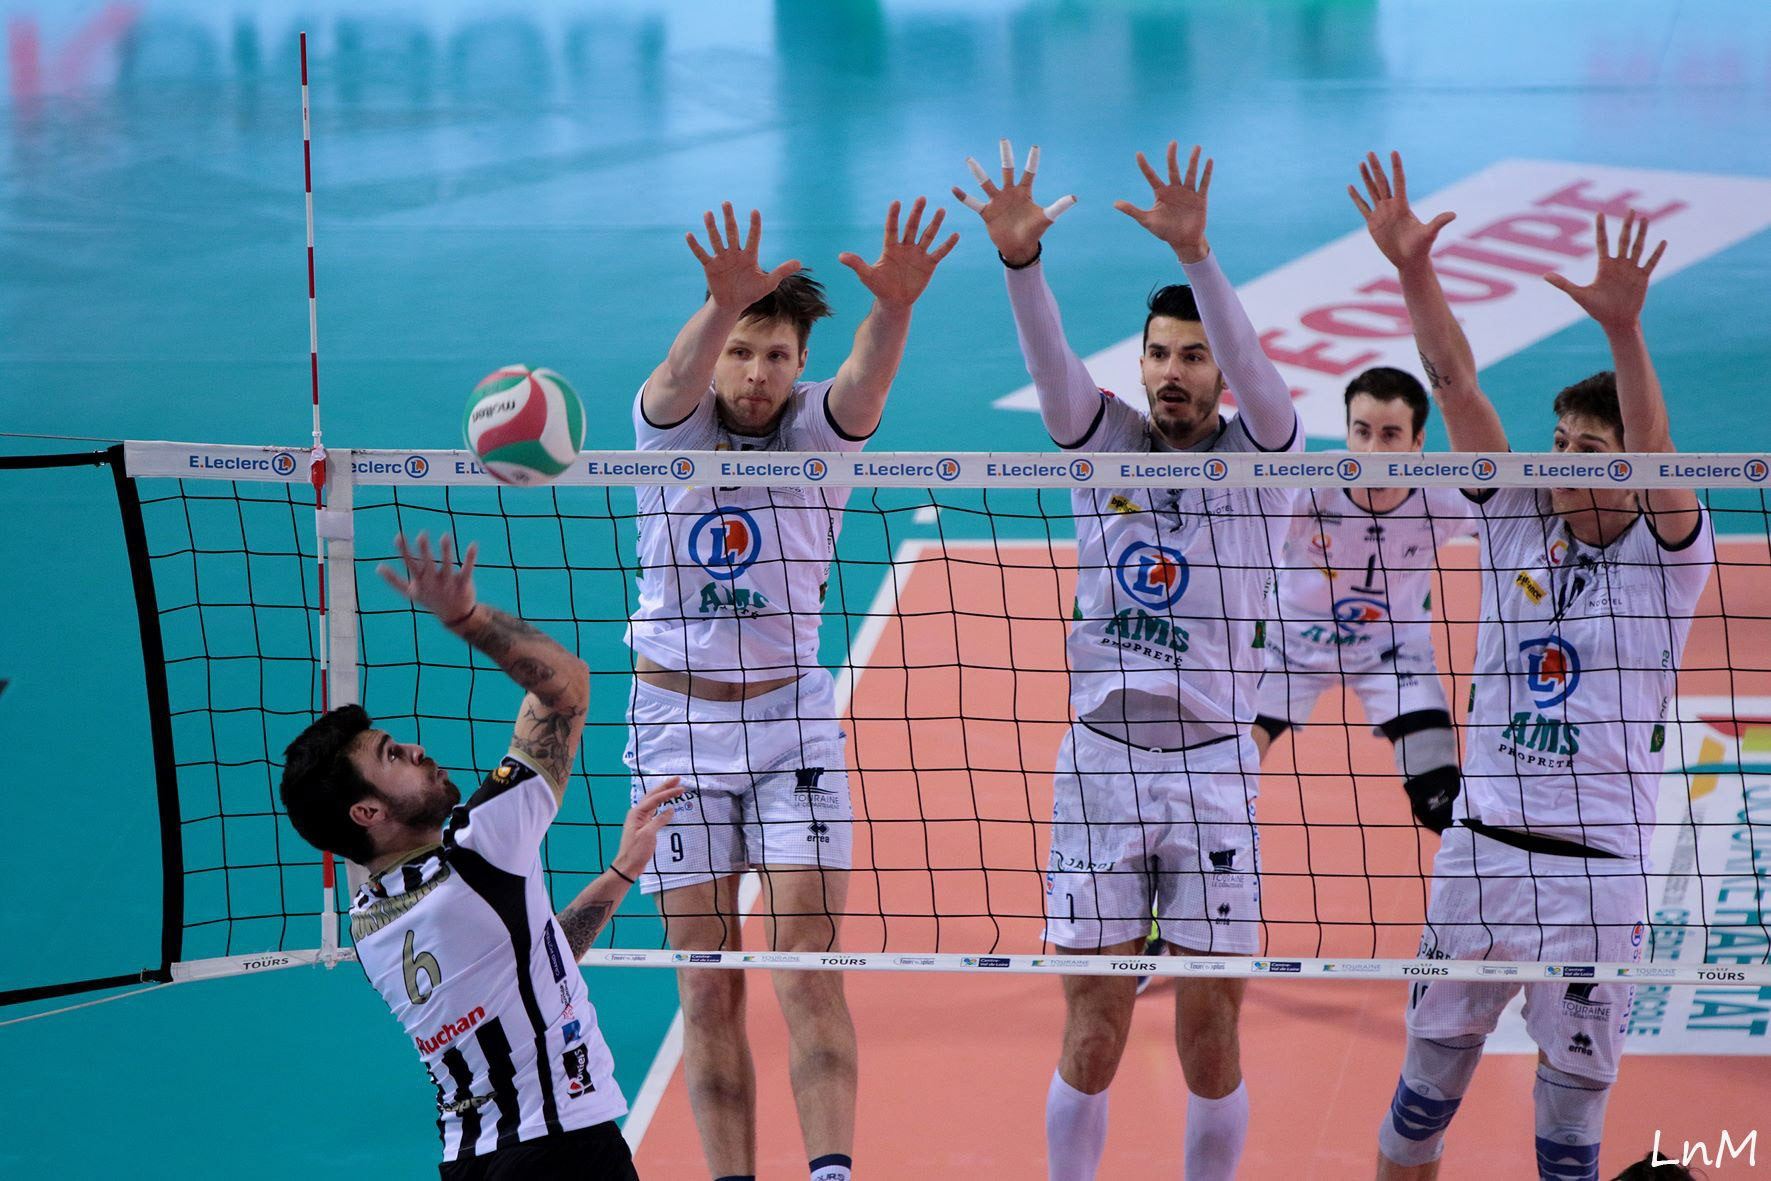 Tours e Chaumont Volley in testa alla classifica di League 1!